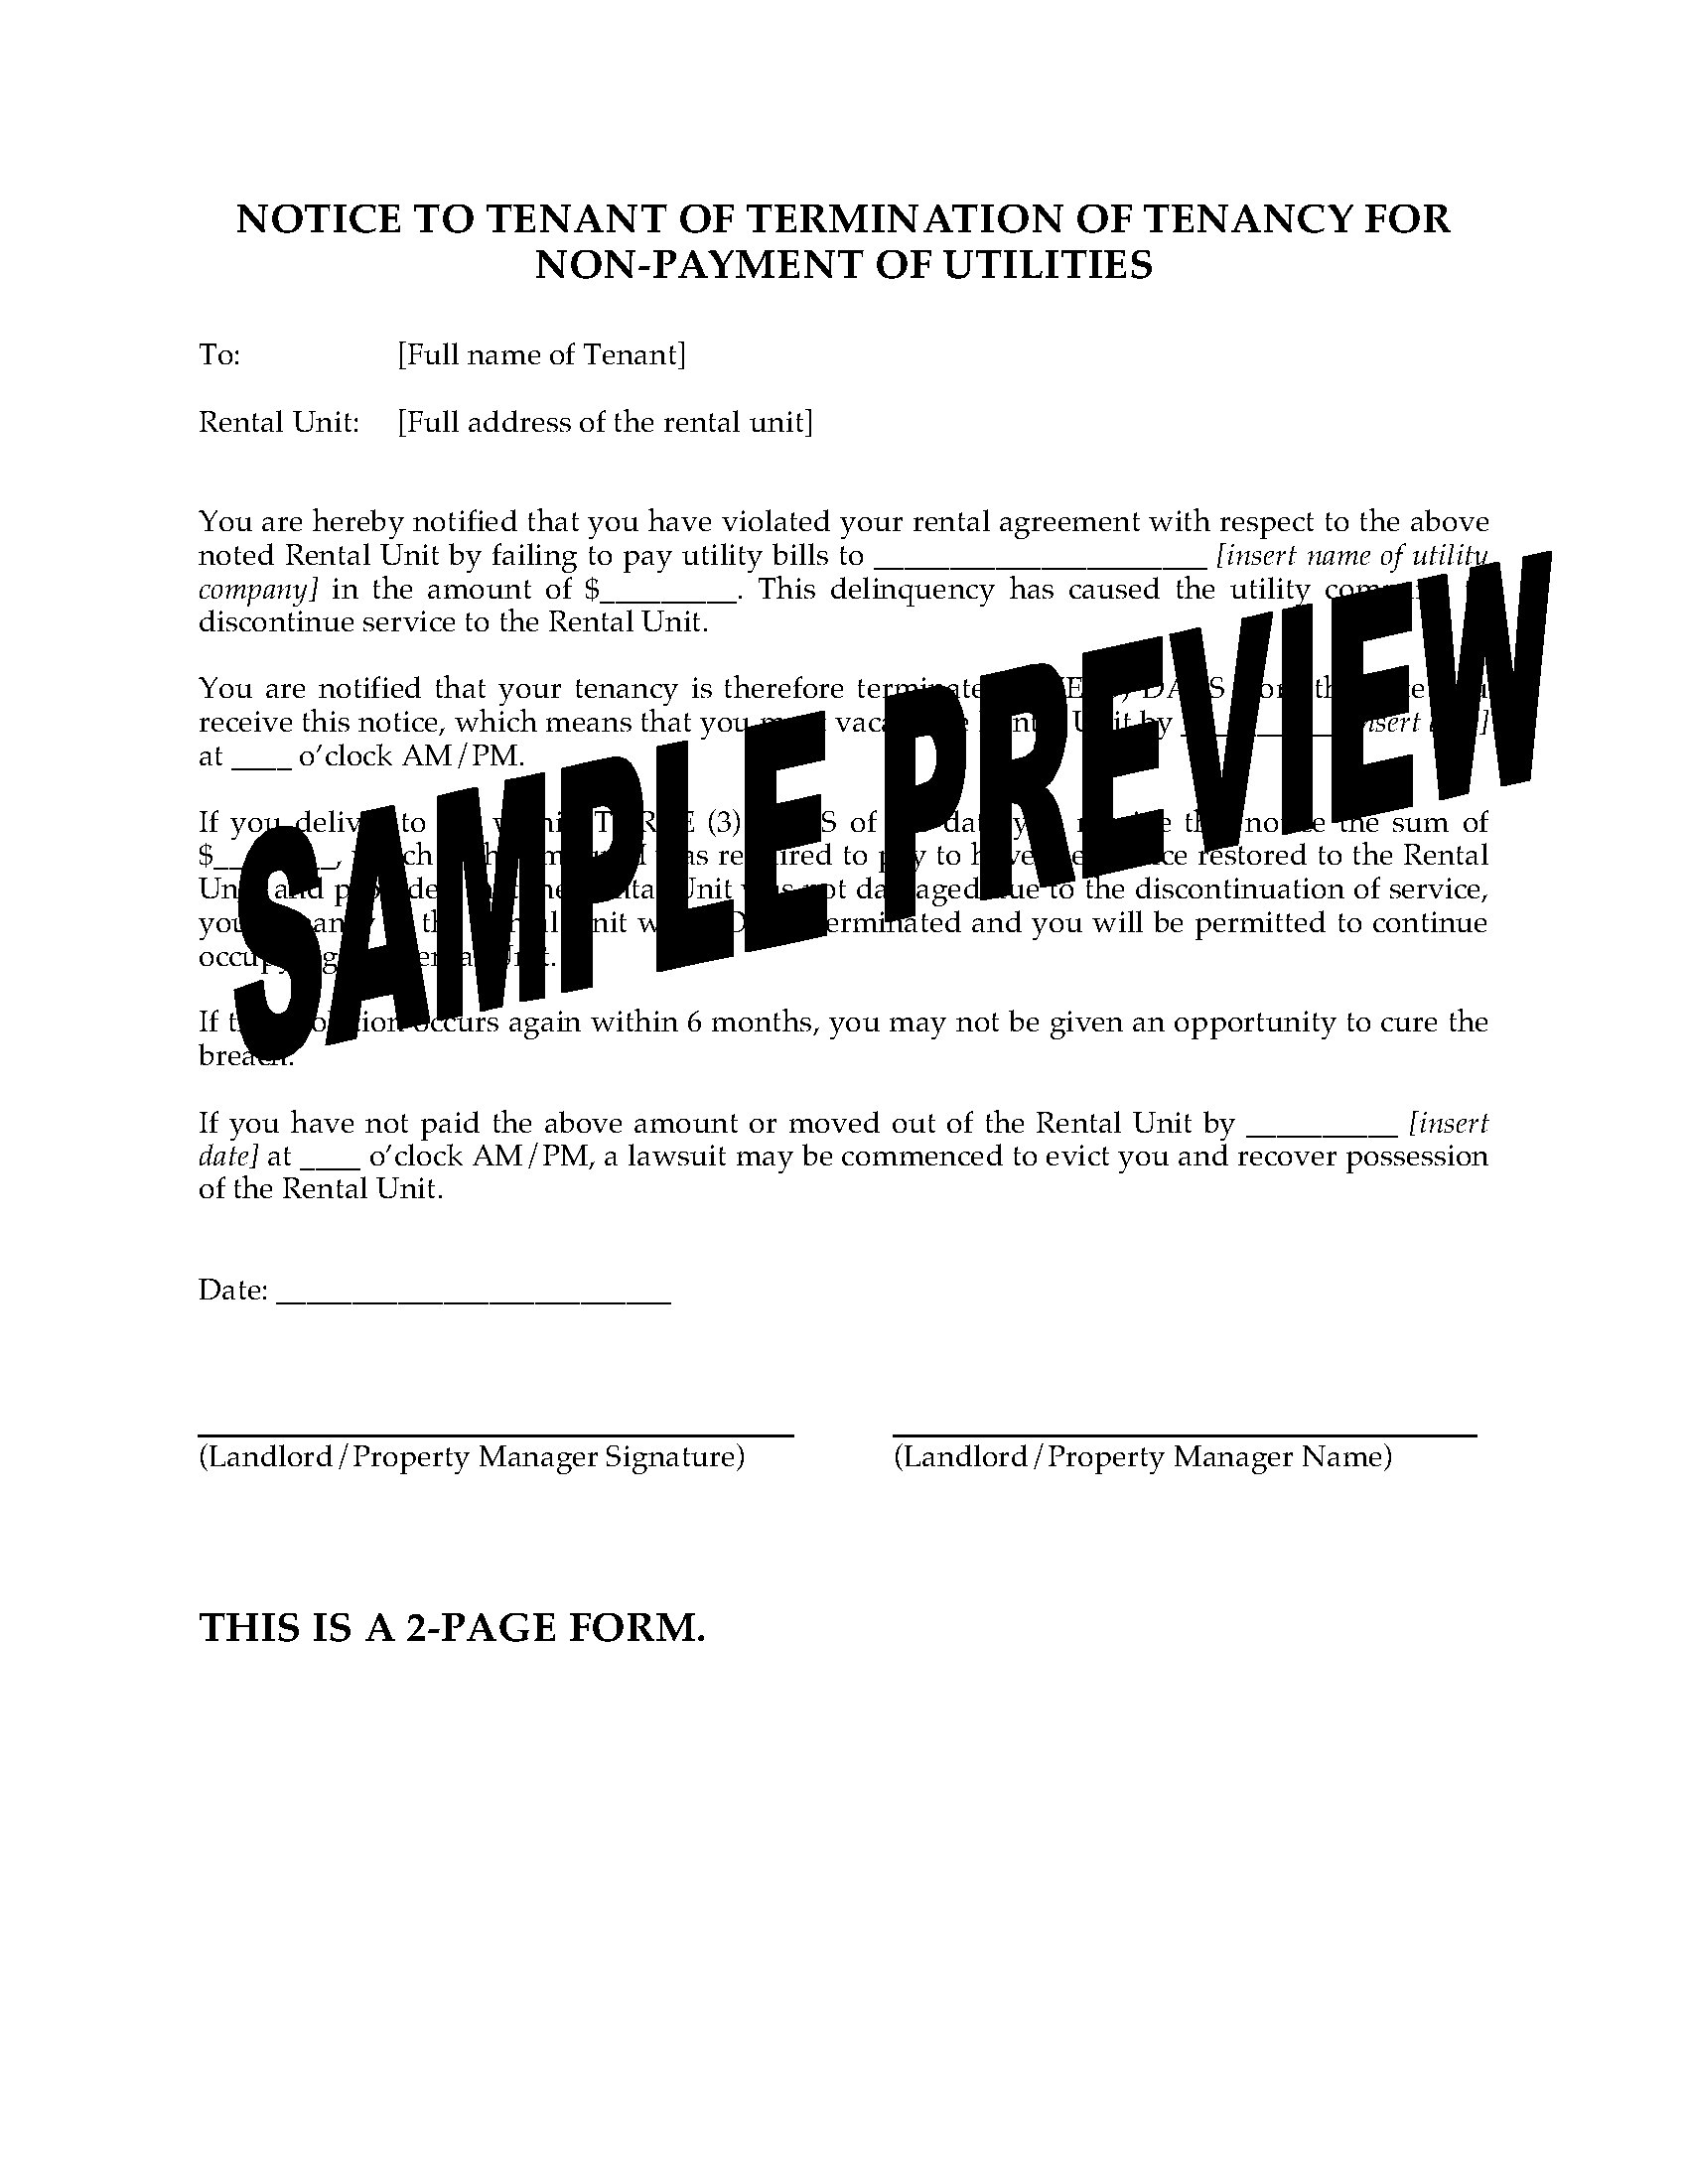 Alaska Notice of Termination of Tenancy for Non-Payment of Utilities